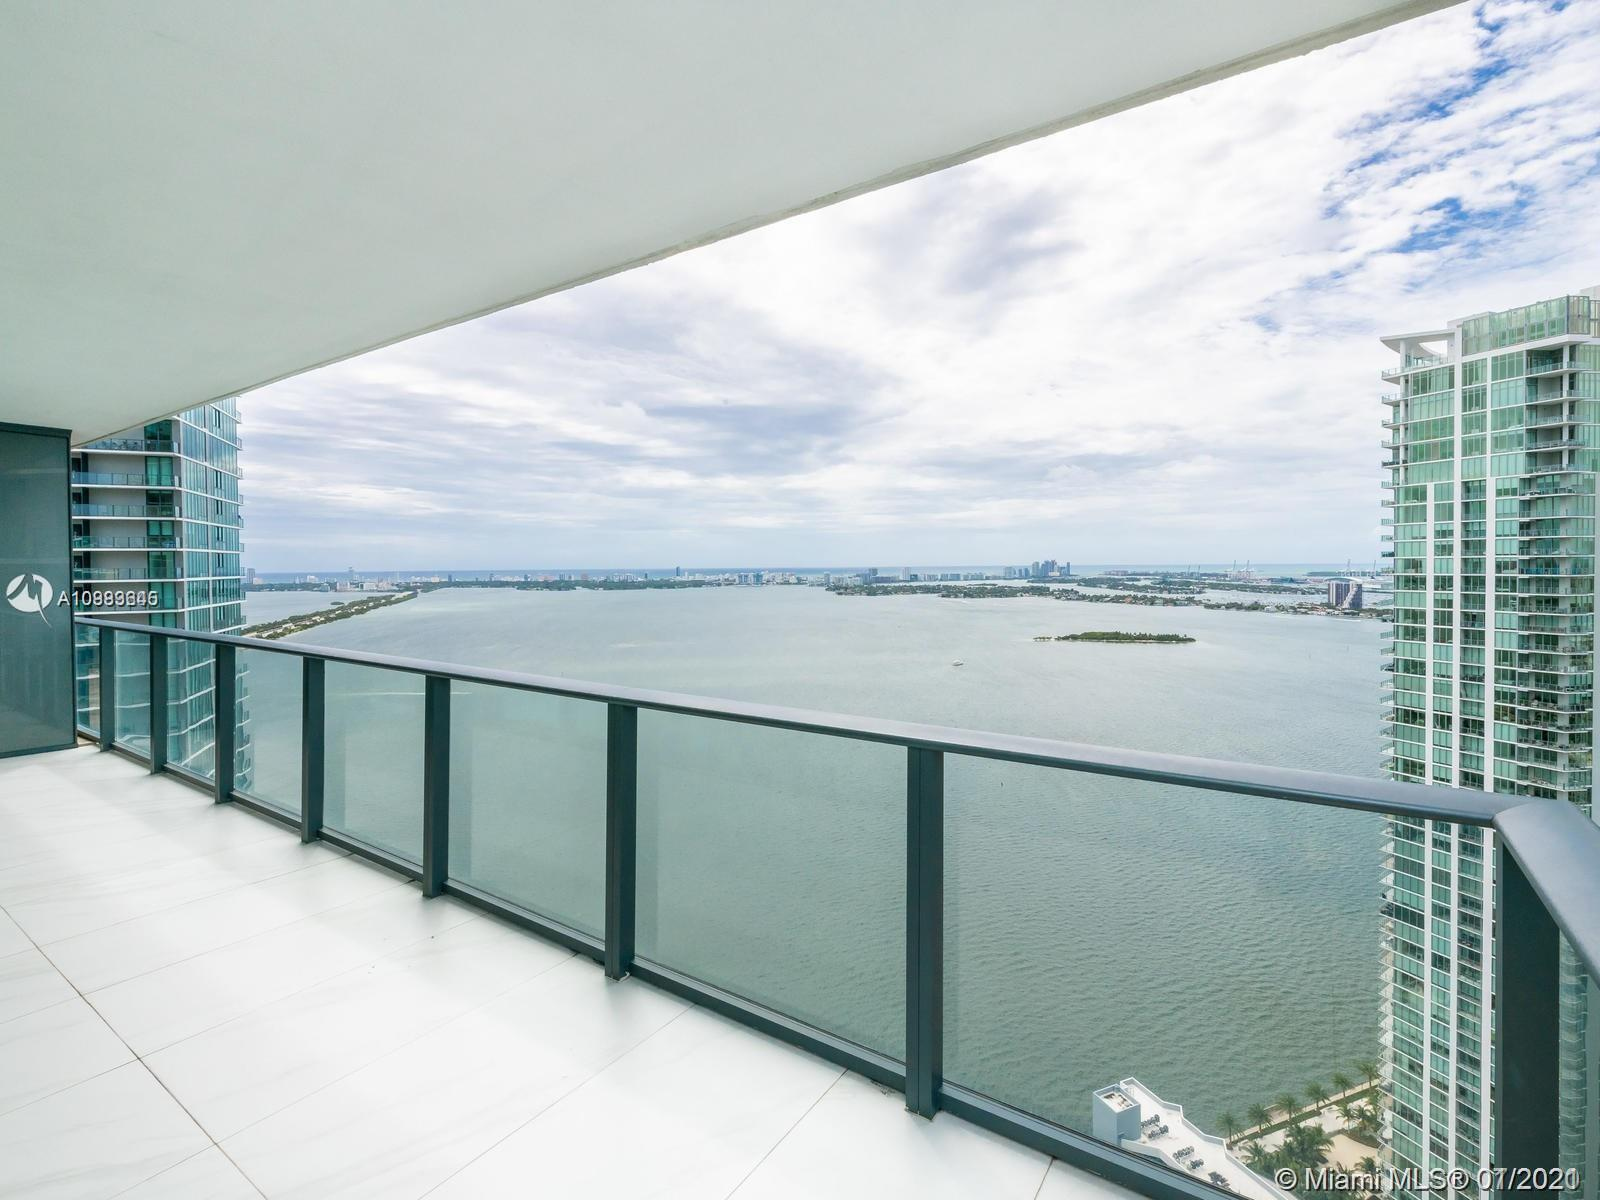 PARAISO BAY - 4 BEDROOM 4 1/2 BATH PLUS DEN TOTAL2,546SF APARTMENT WITH DIRECT BREATHTAKING WATER VI